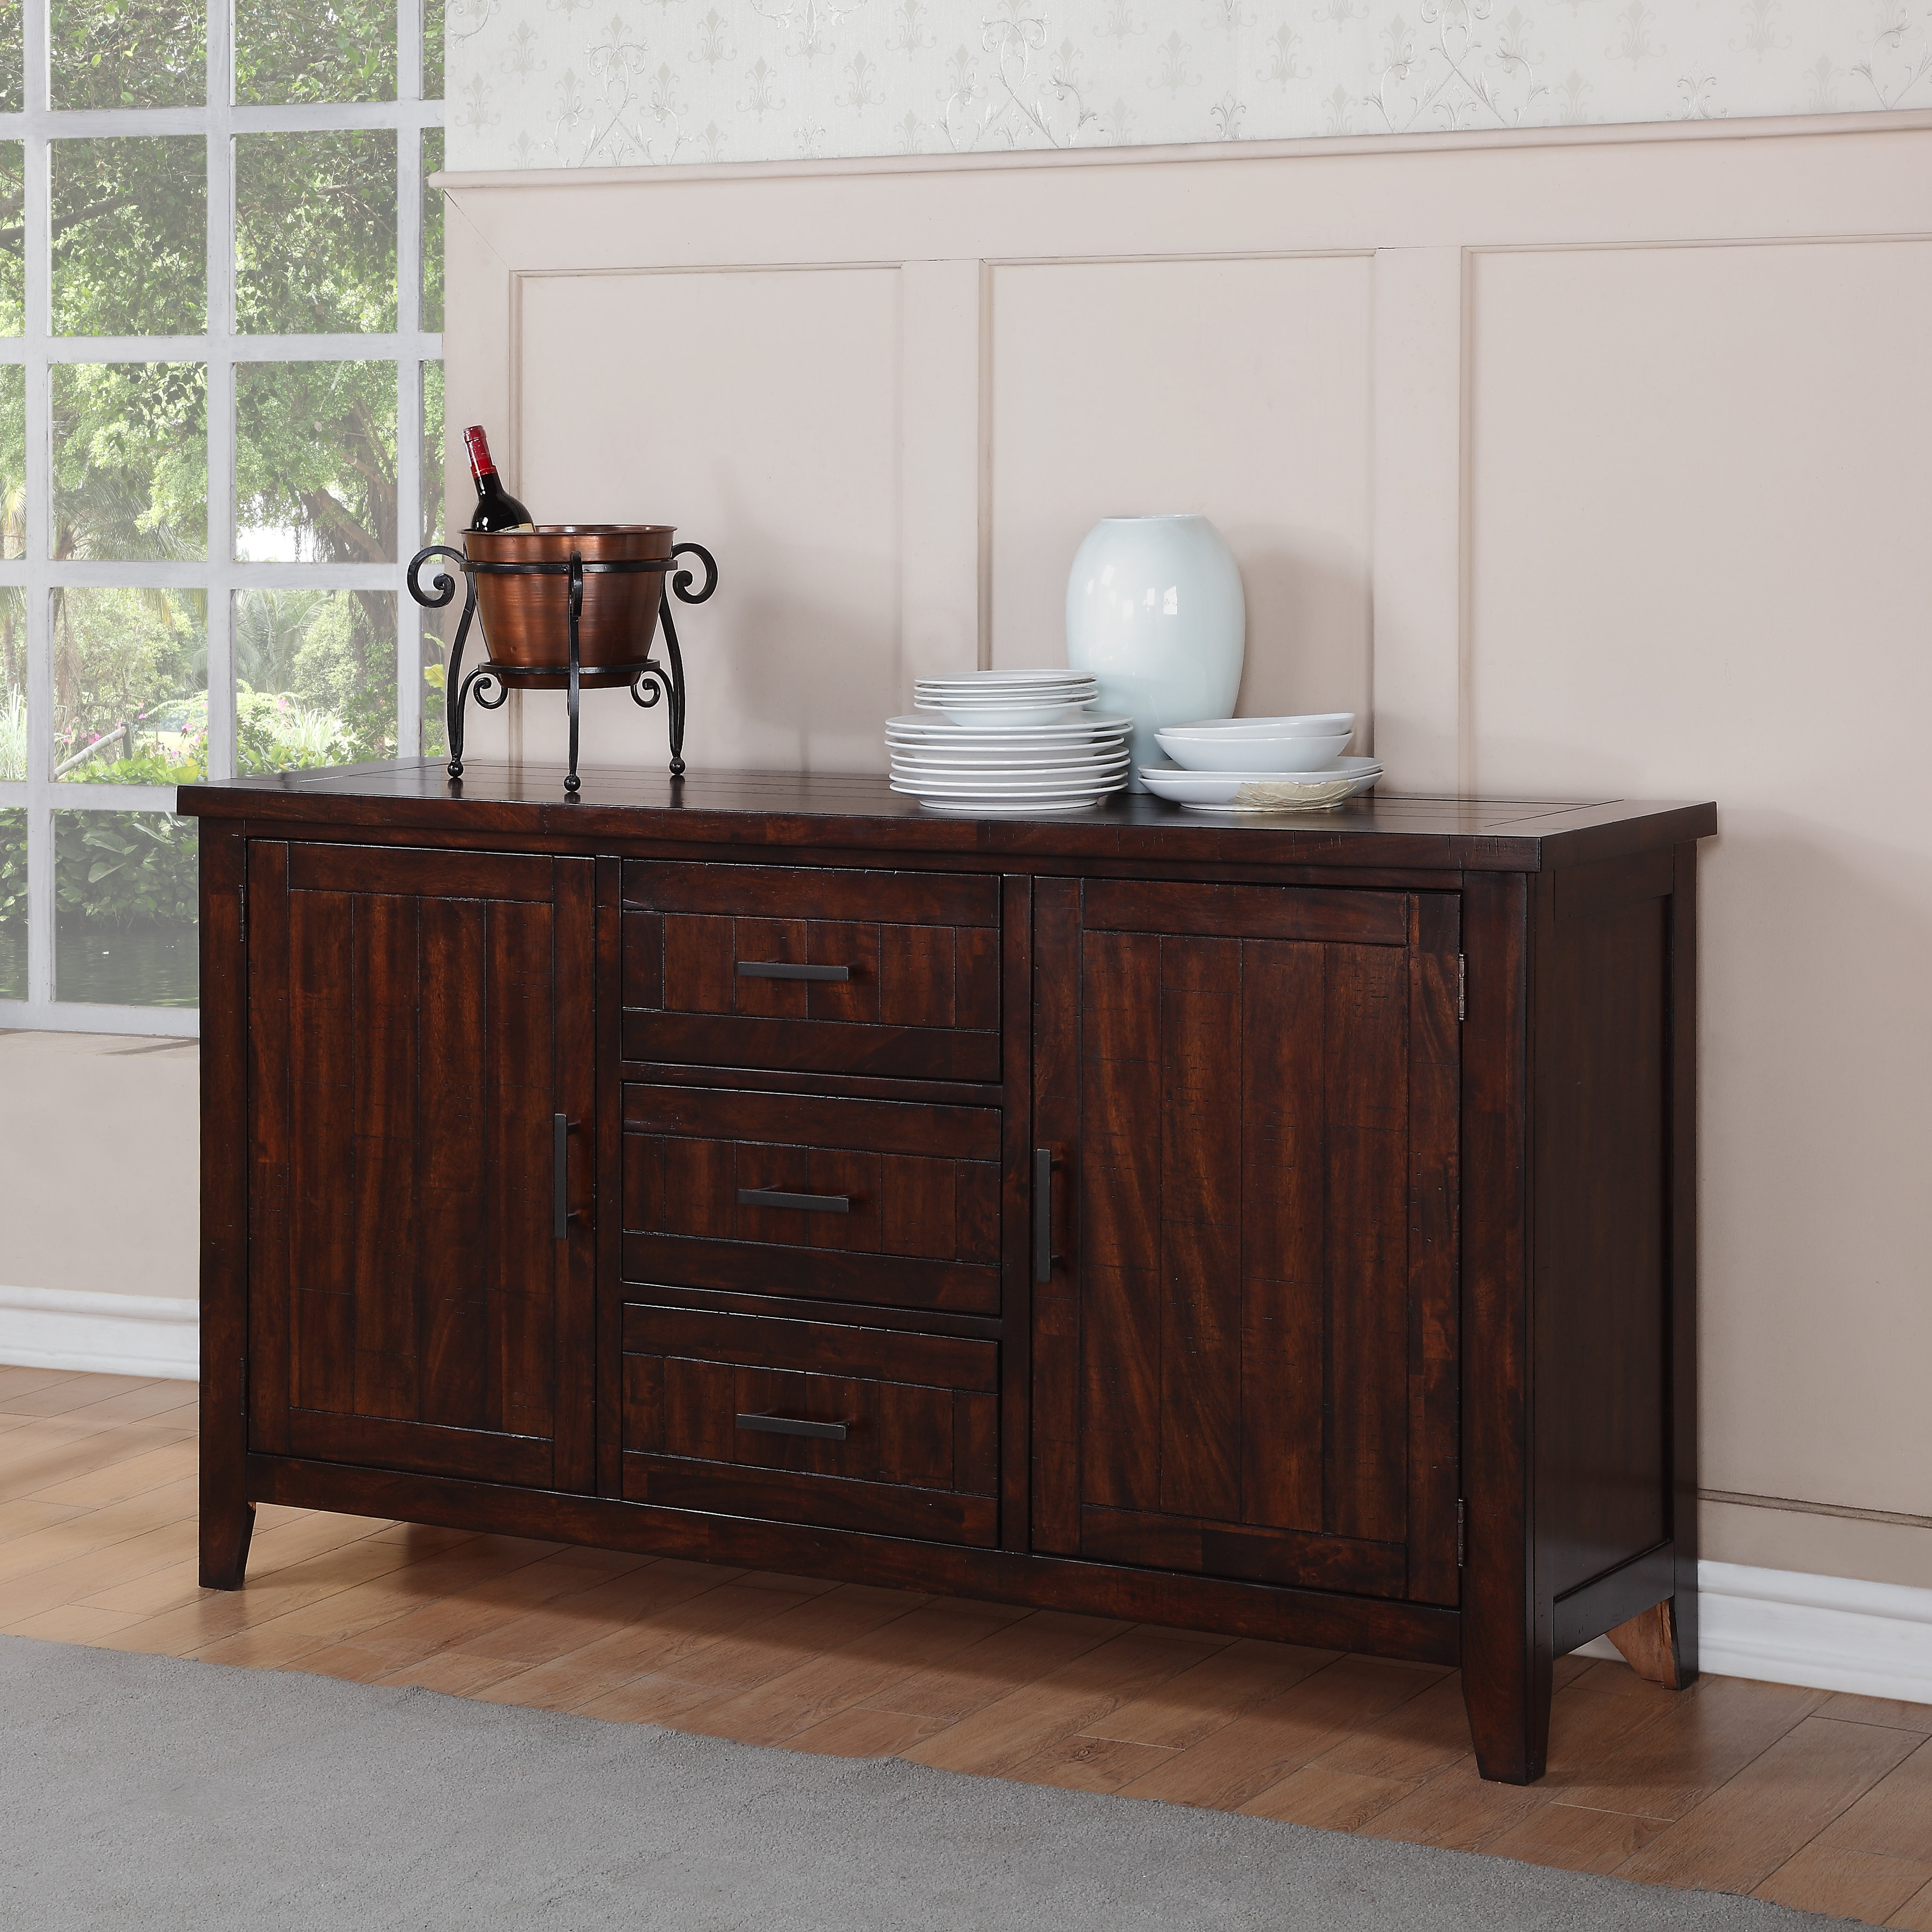 Cabin & Lodge Sideboards & Buffets You'll Love In 2019 | Wayfair Intended For Most Recently Released Stennis Sideboards (View 9 of 20)